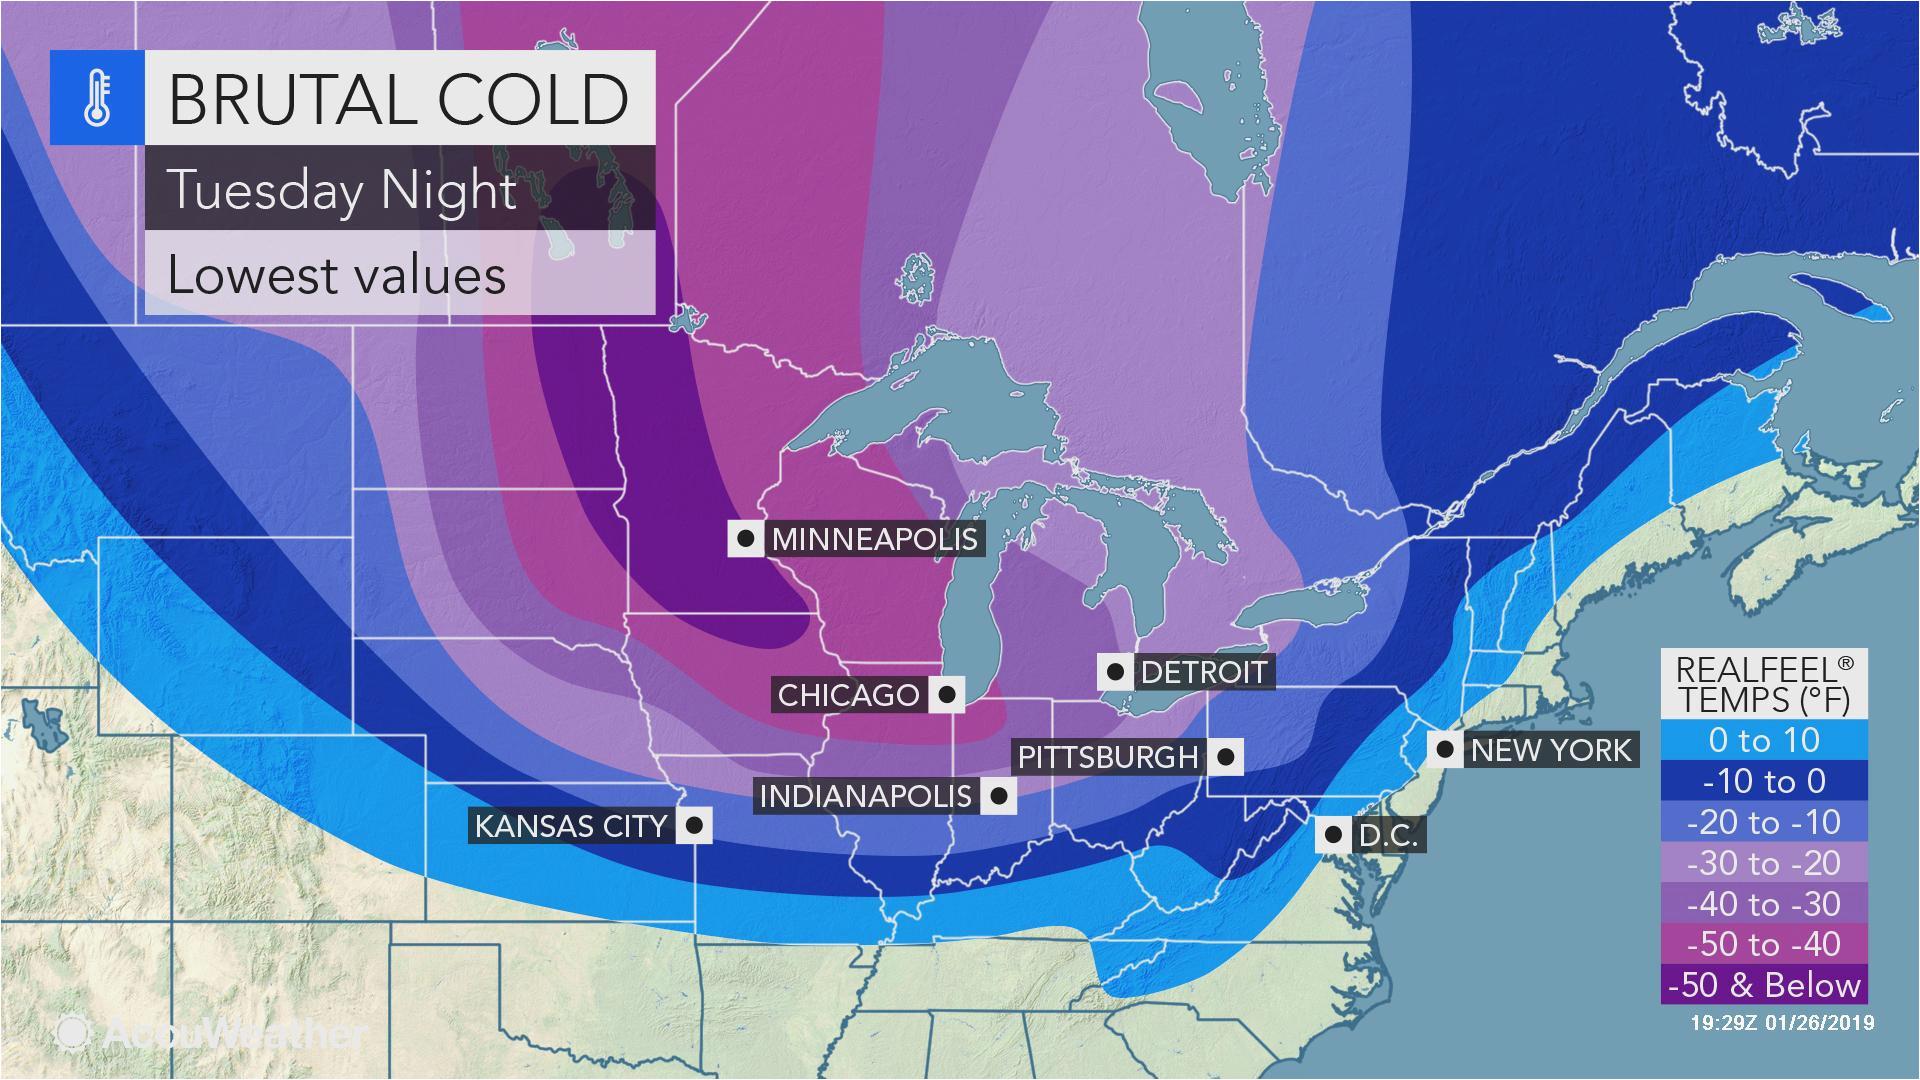 midwestern us braces for coldest weather in years as polar vortex